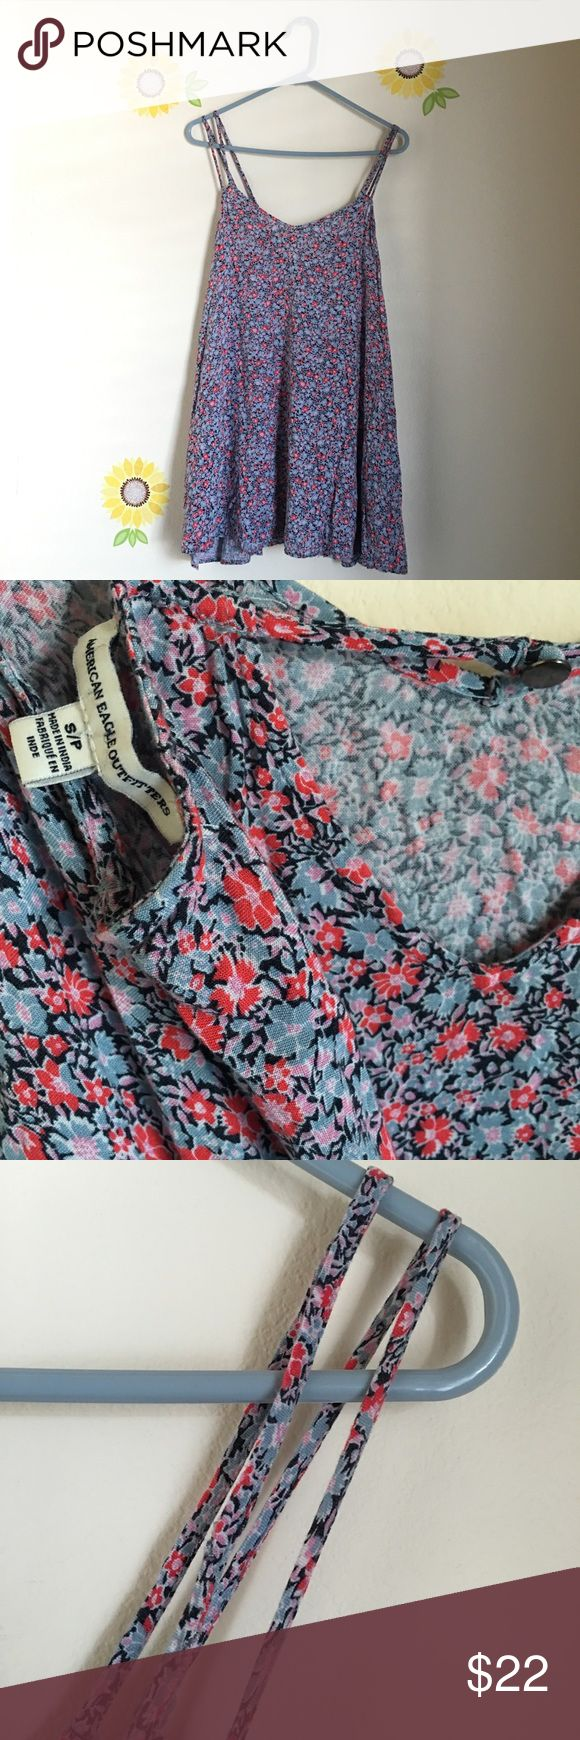 AE American Eagle Floral Swing Dress • Only a few fly away strings around straps - picture included Still in great condition American Eagle Outfitters Dresses Mini